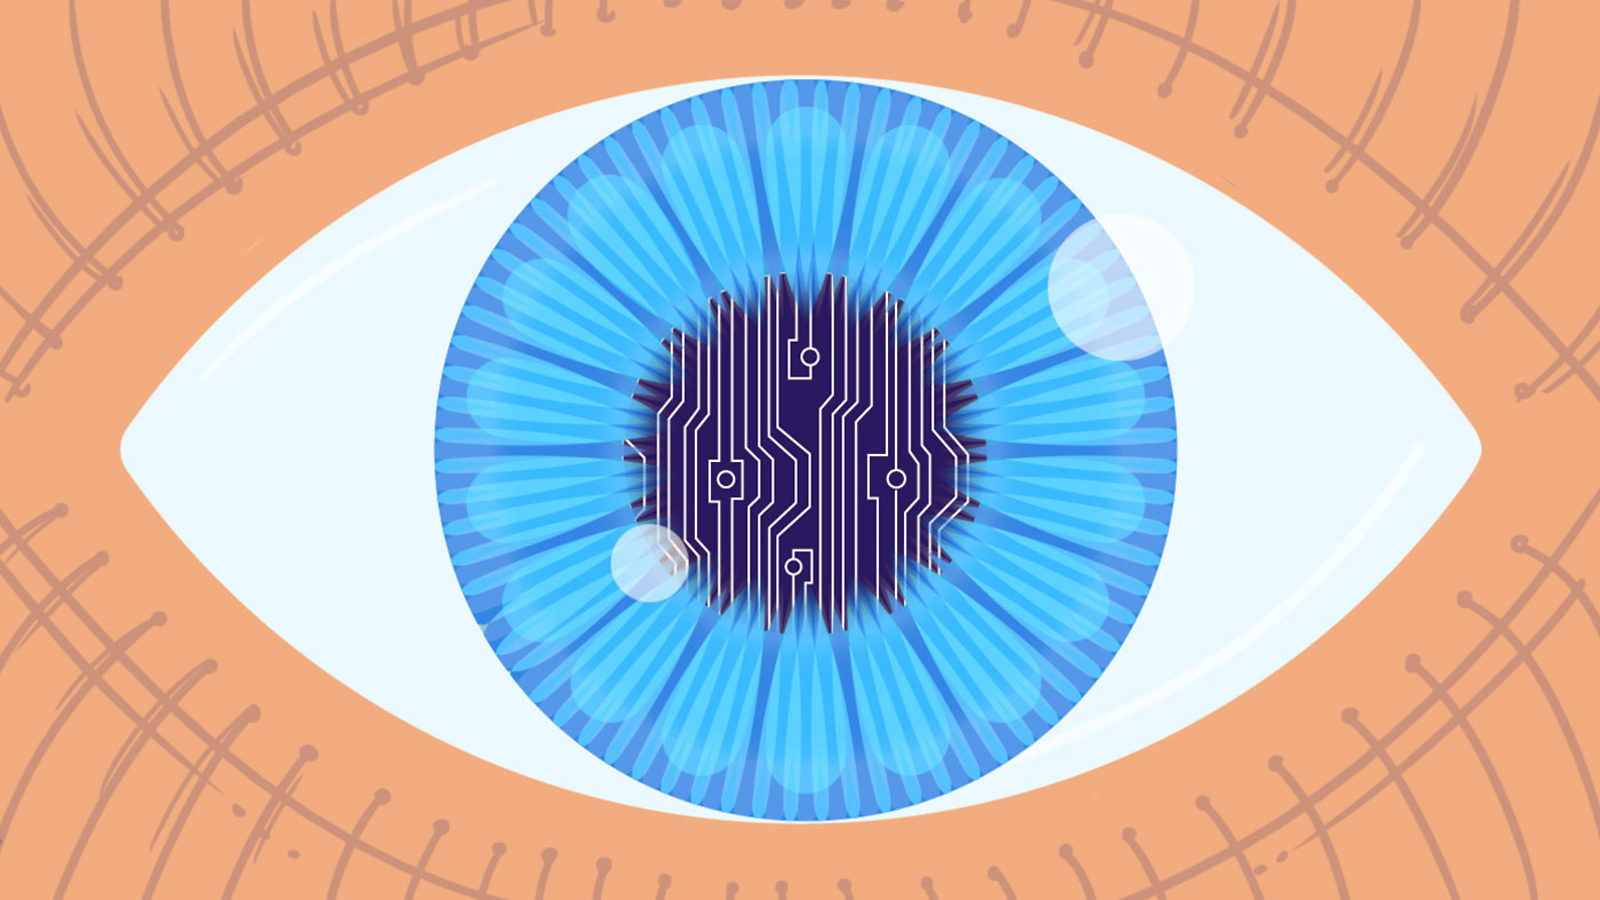 Illustration of eye with circuit board inside pupil